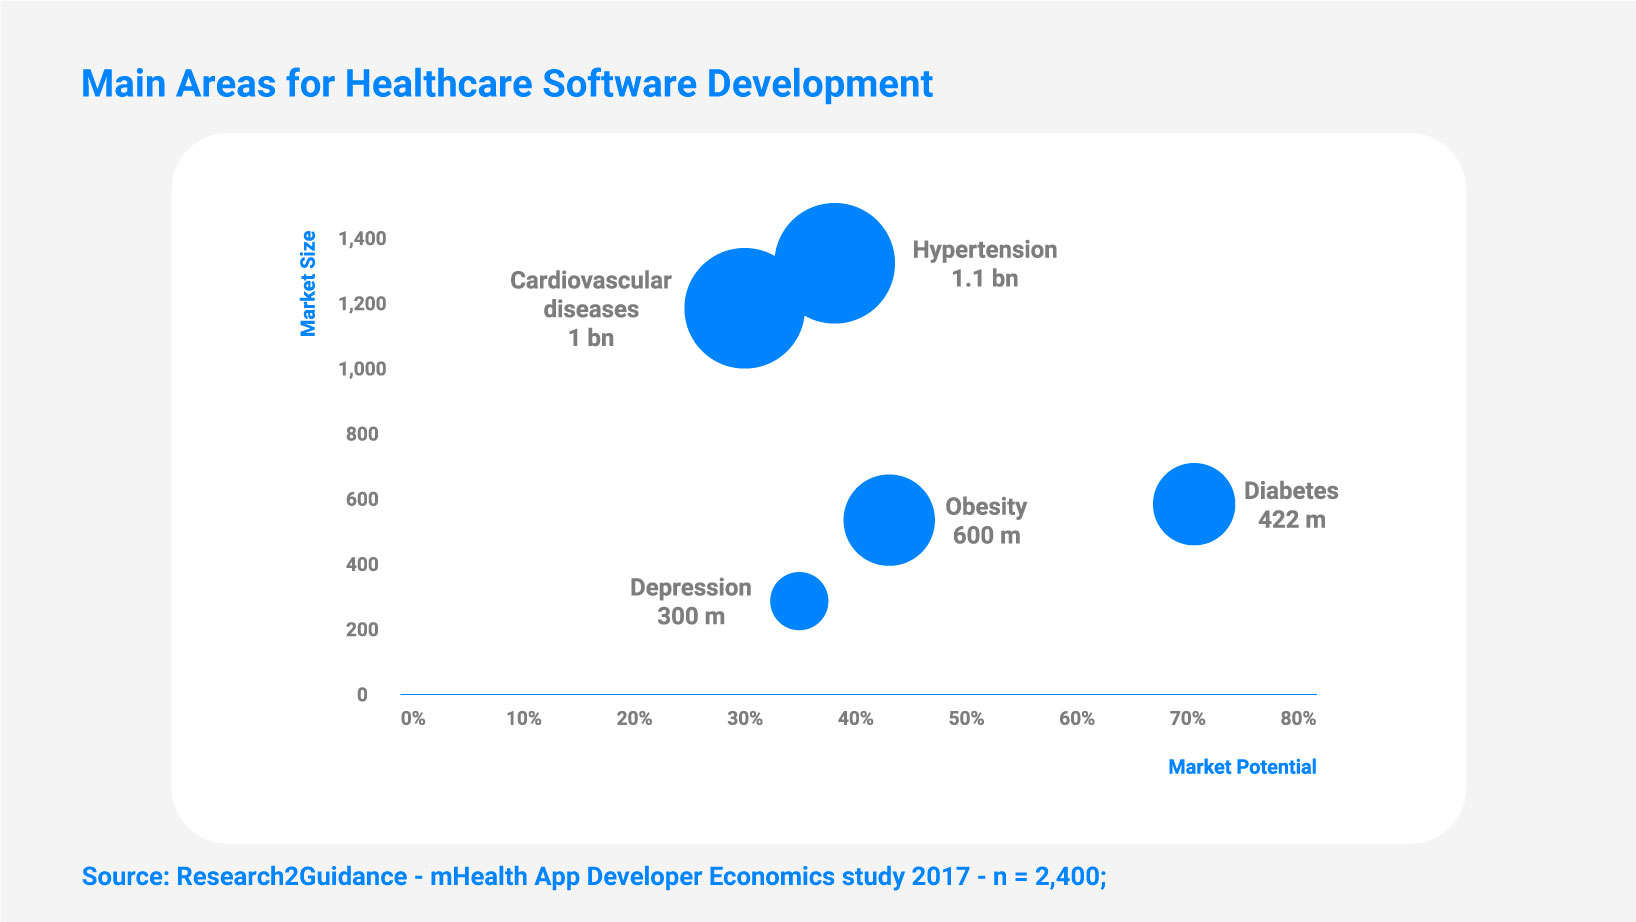 Main Areas for Healthcare Software Development